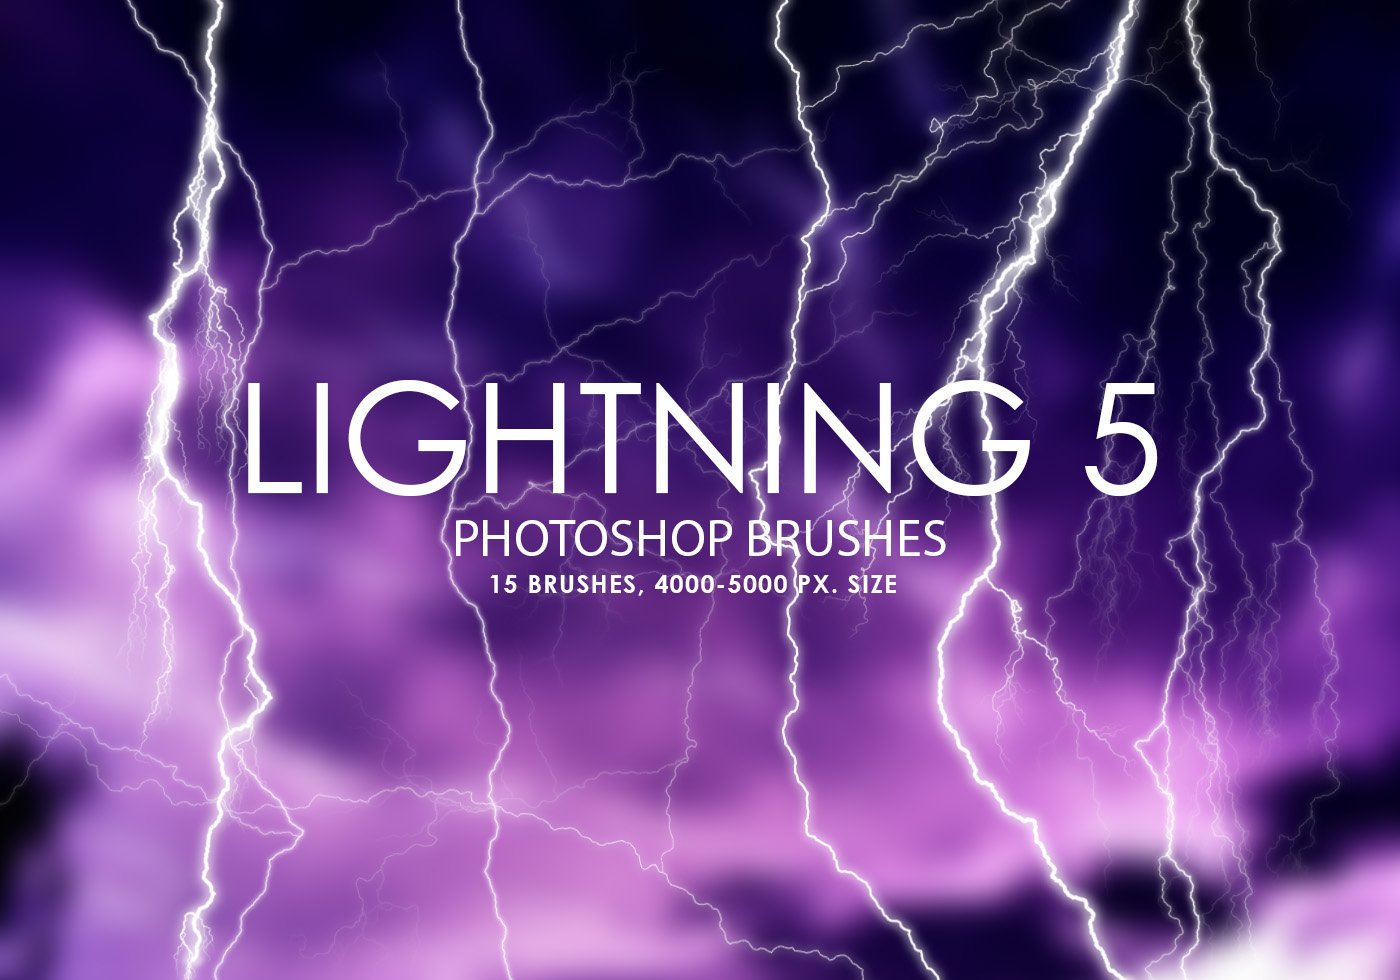 Free Lightning Photoshop Brushes 5 - Free Photoshop ...